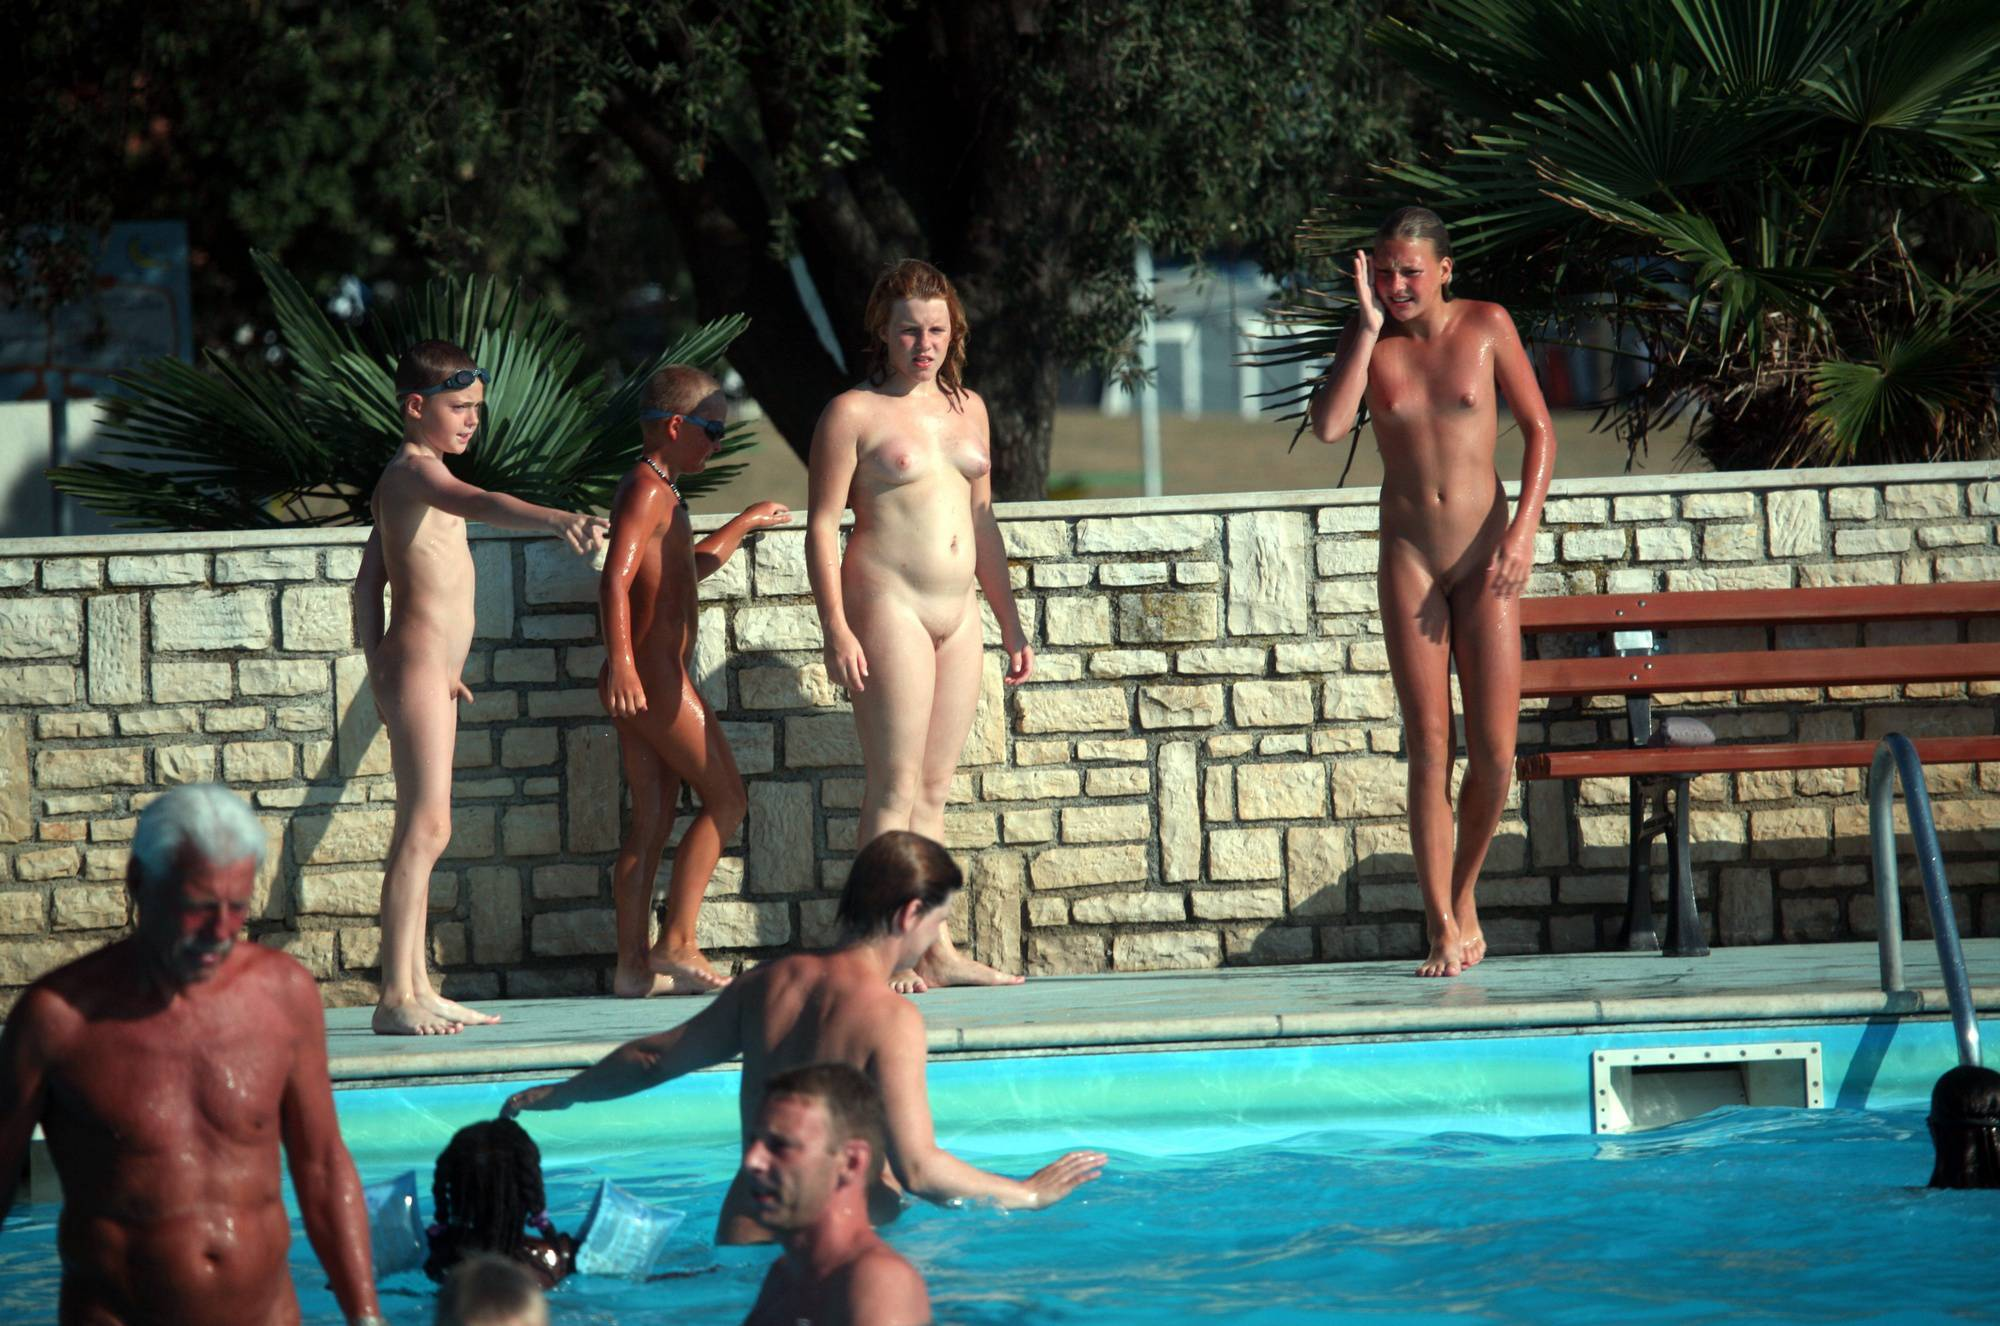 Nudist Pool Group Gather - 1